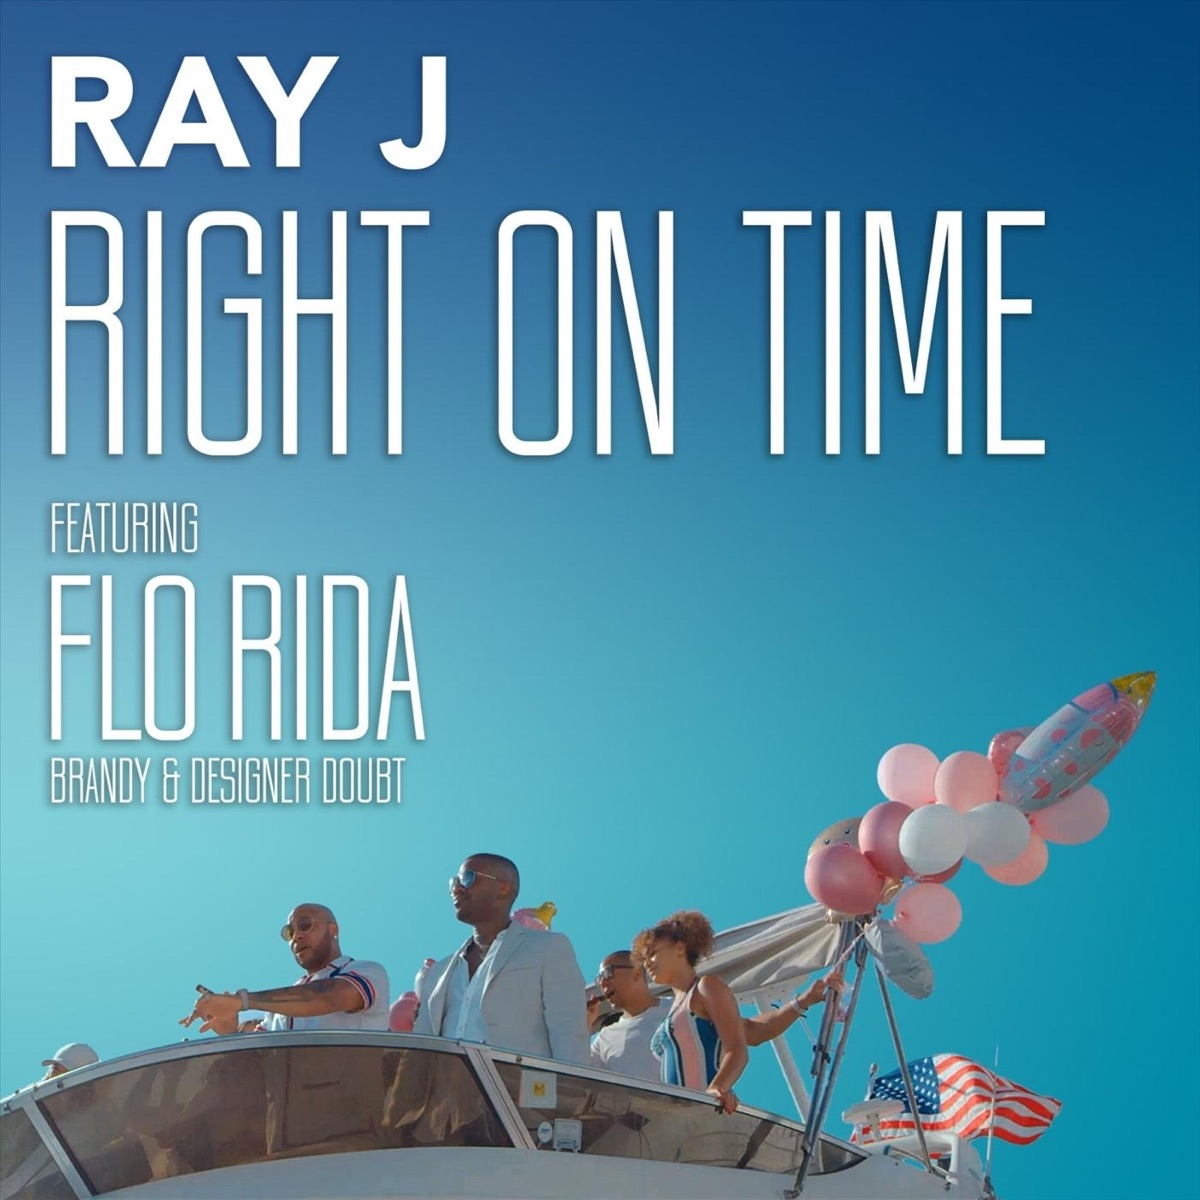 Right On Time feat Flo Rida Brandy  Designer Doubt - Single Ray J CD cover